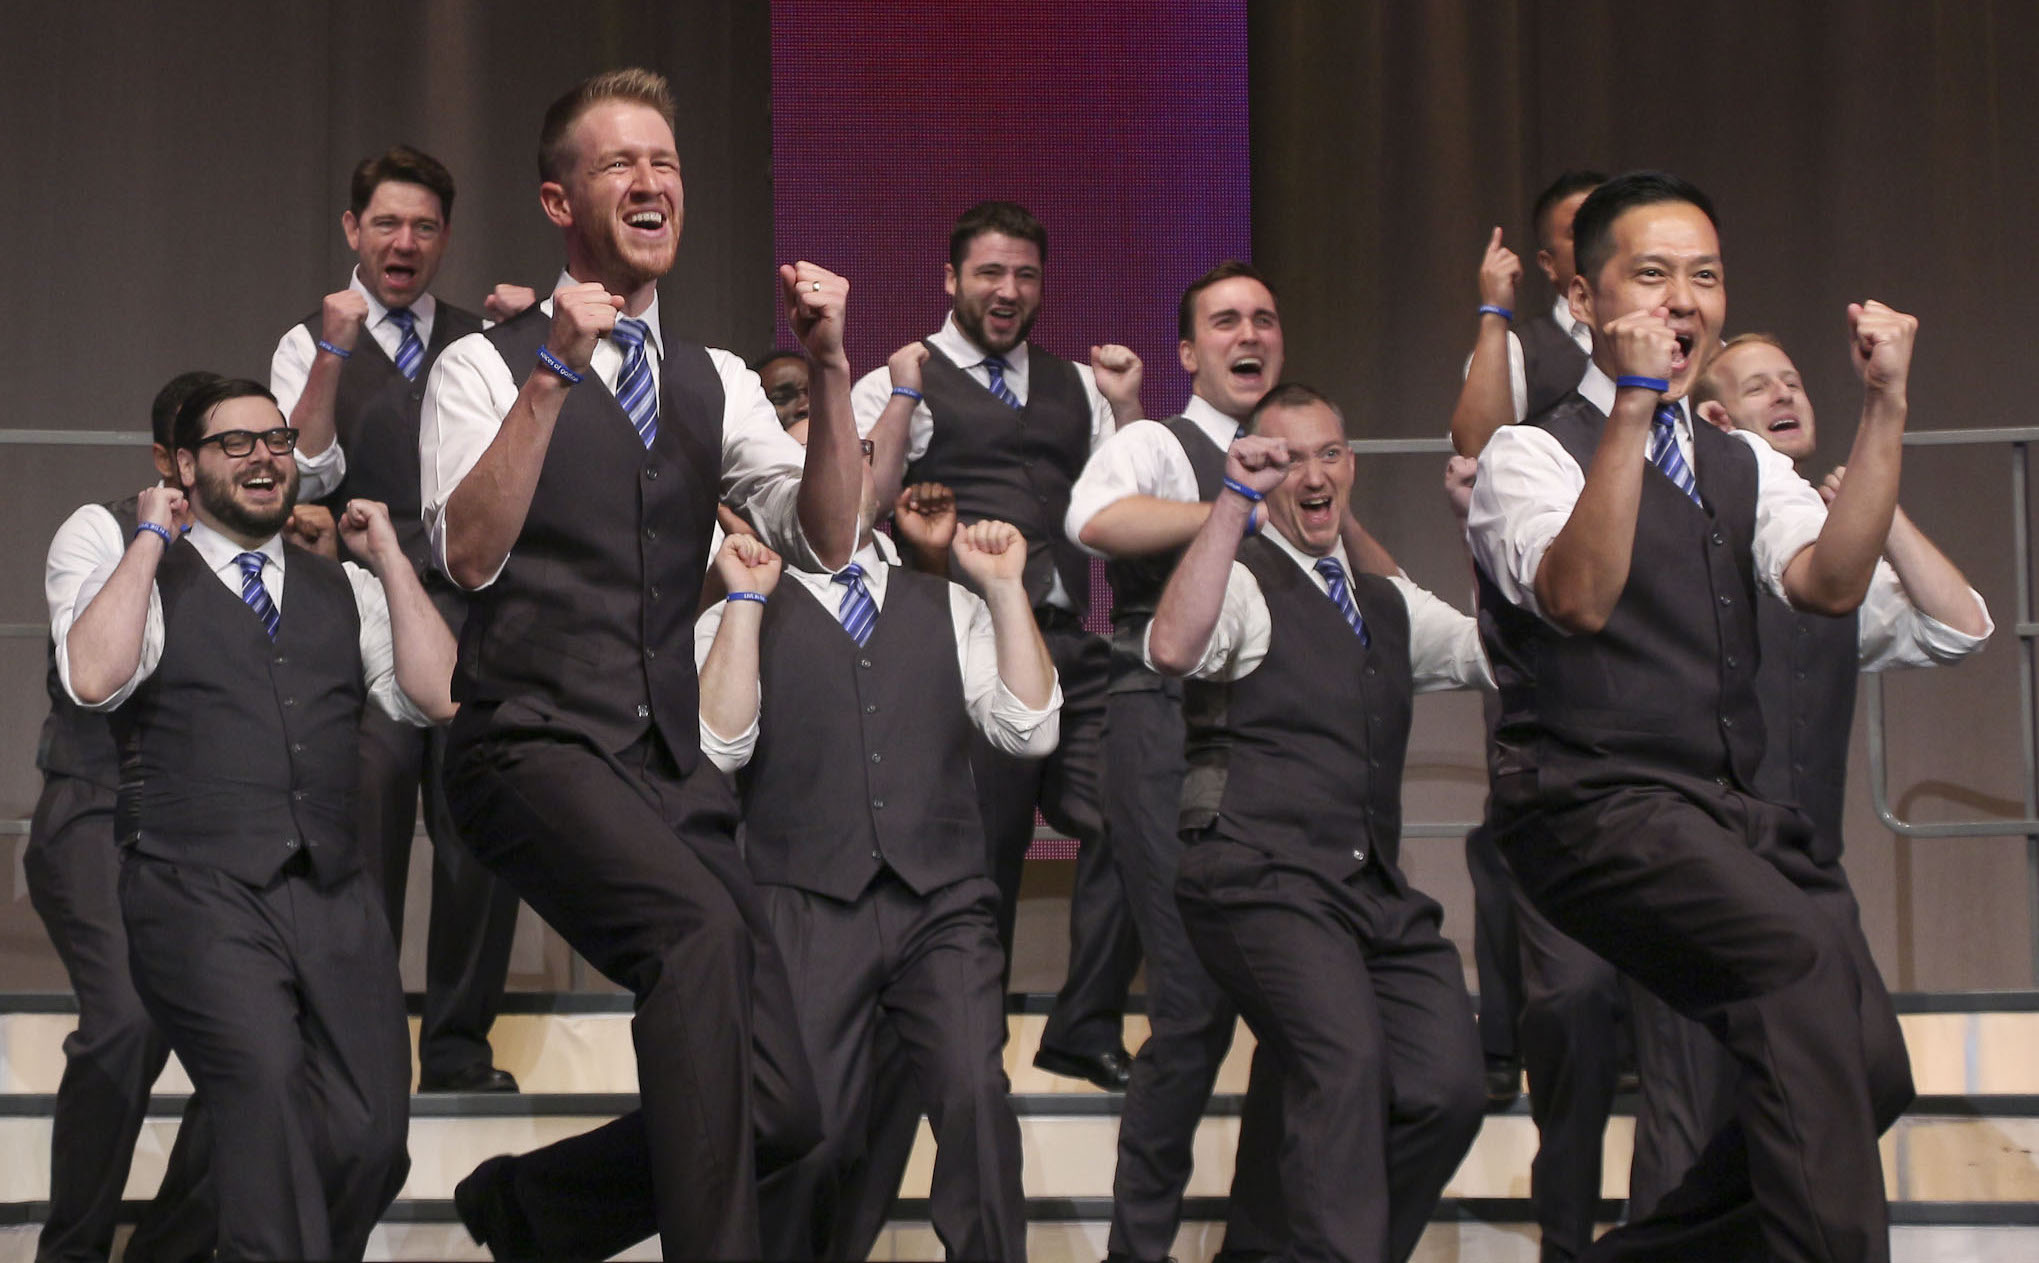 Many thanks to the Barbershop Harmony Society, the Mid-Atlantic District, and most of all, our friends, families, and fans for their continued support throughout the year. (Photo credit Barbershop Harmony Society / Lorin May)